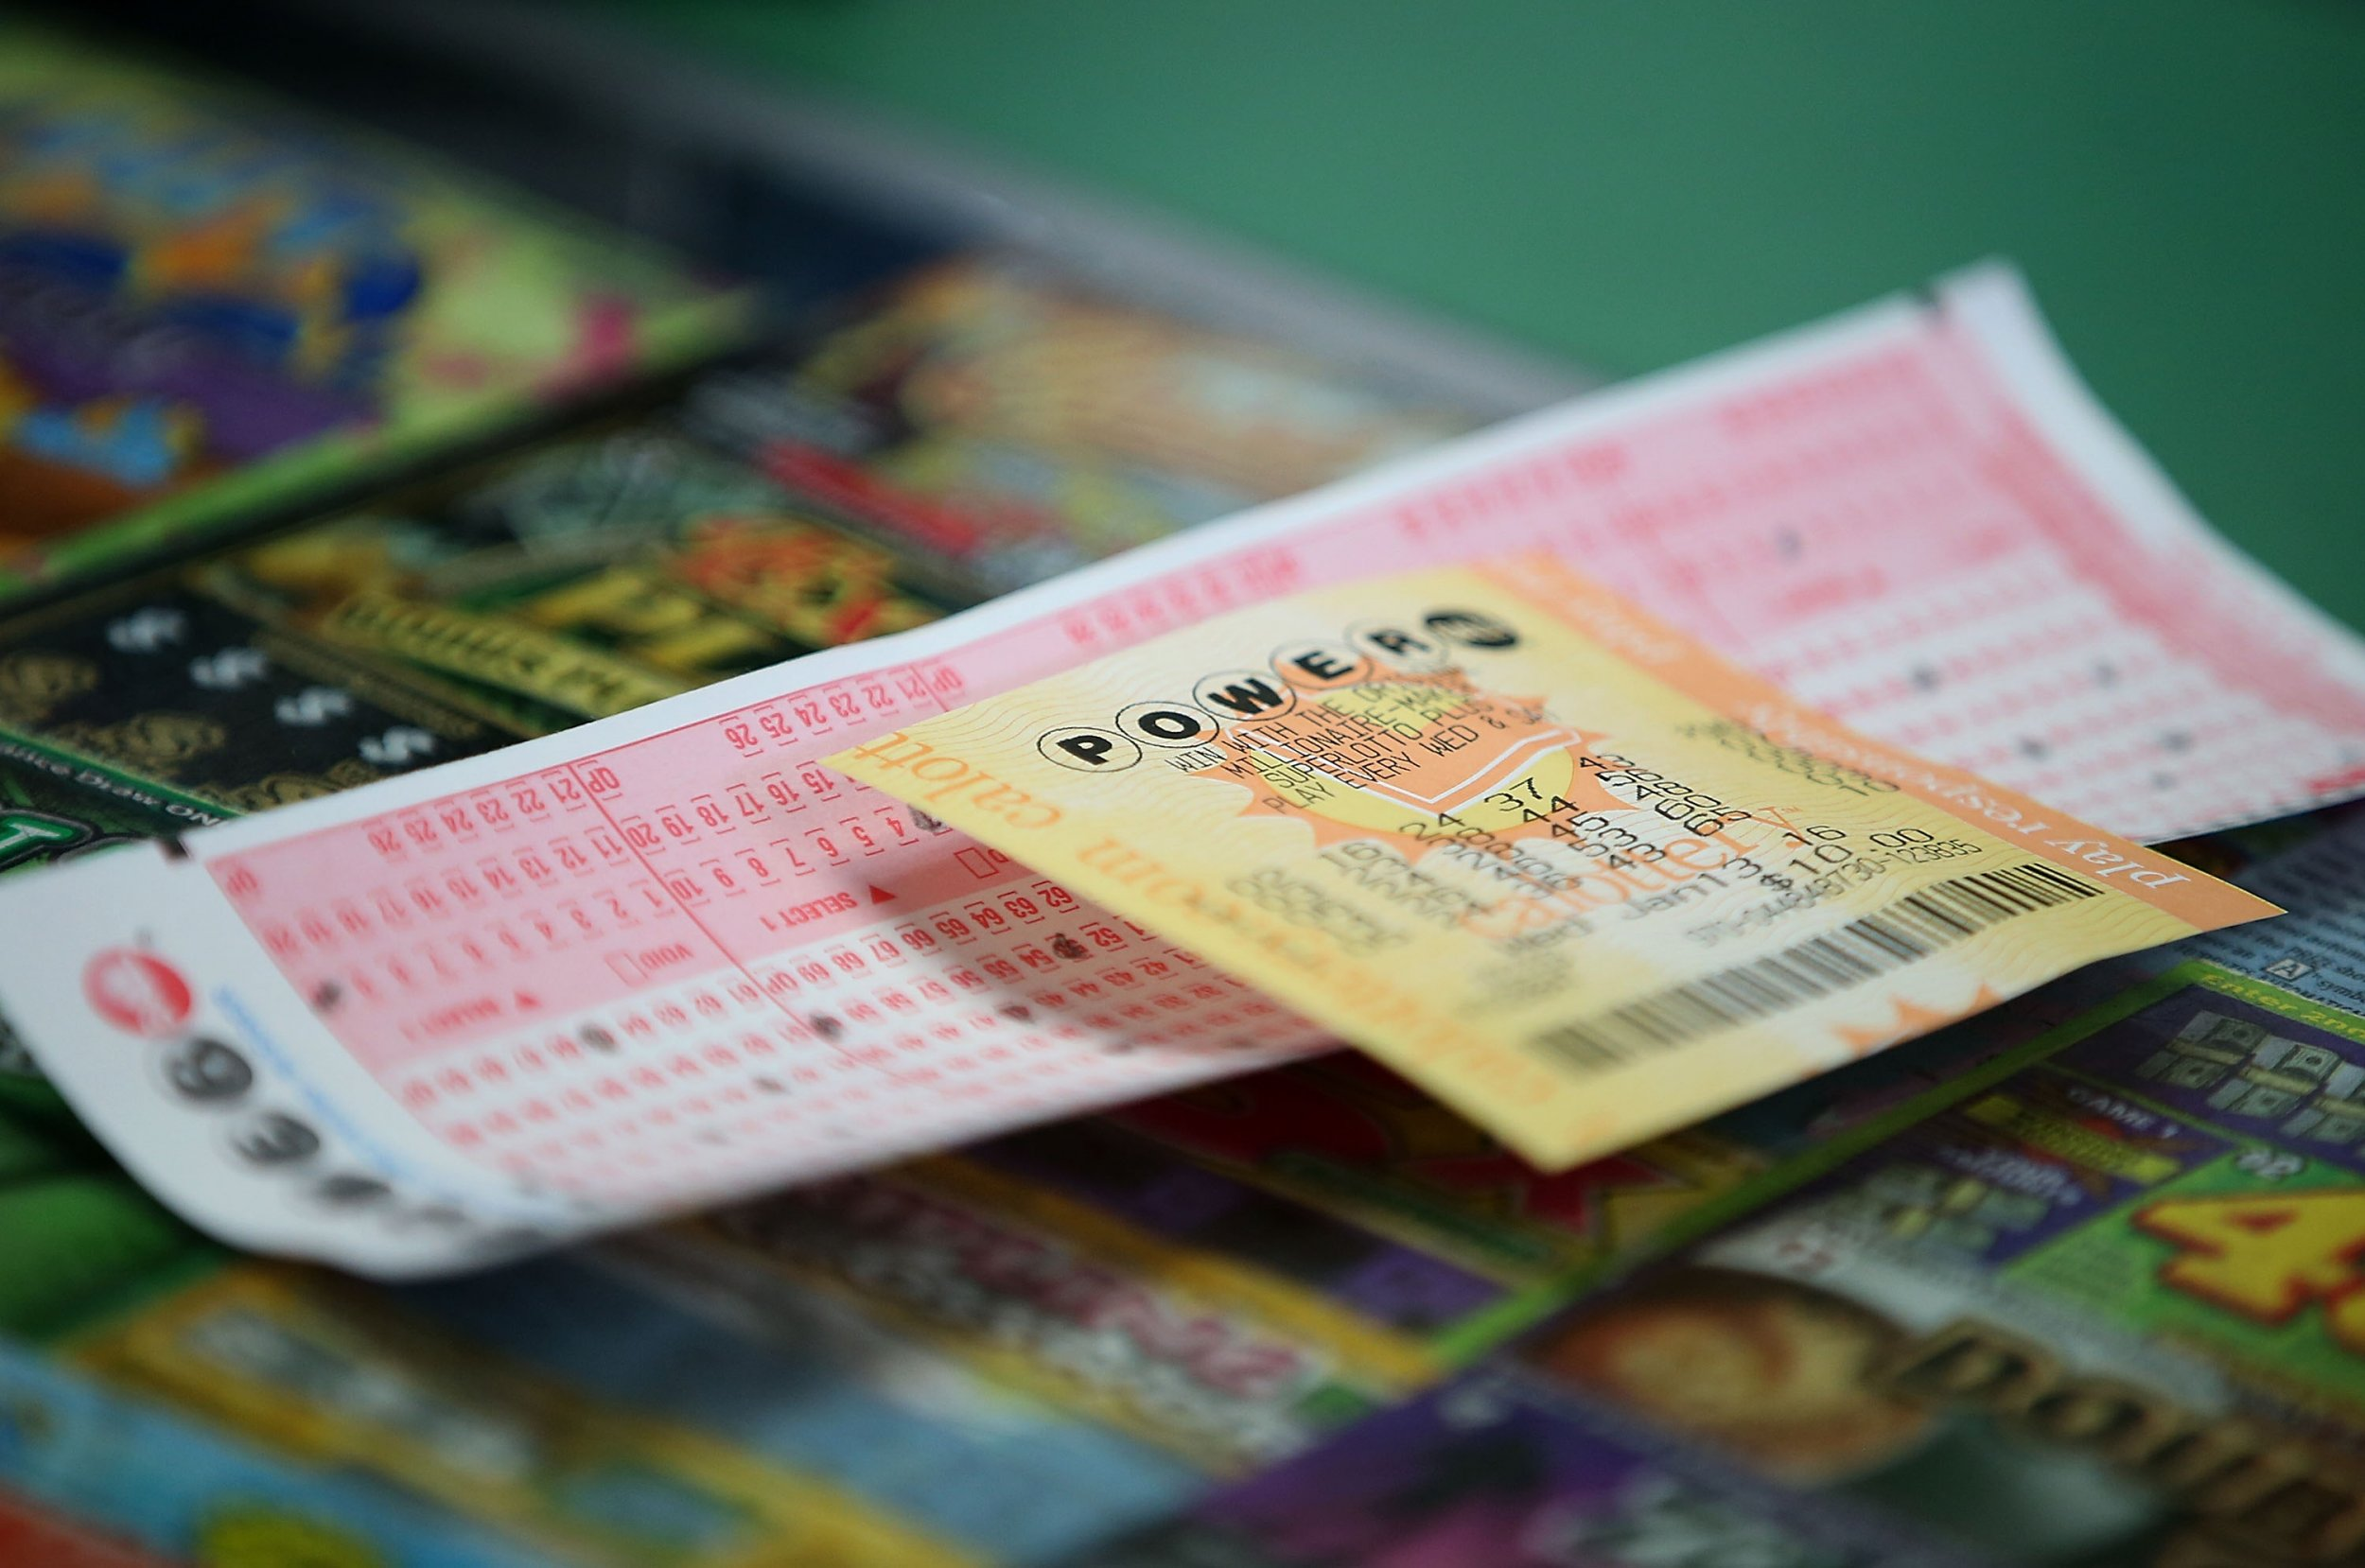 powerball tickets on counter with card